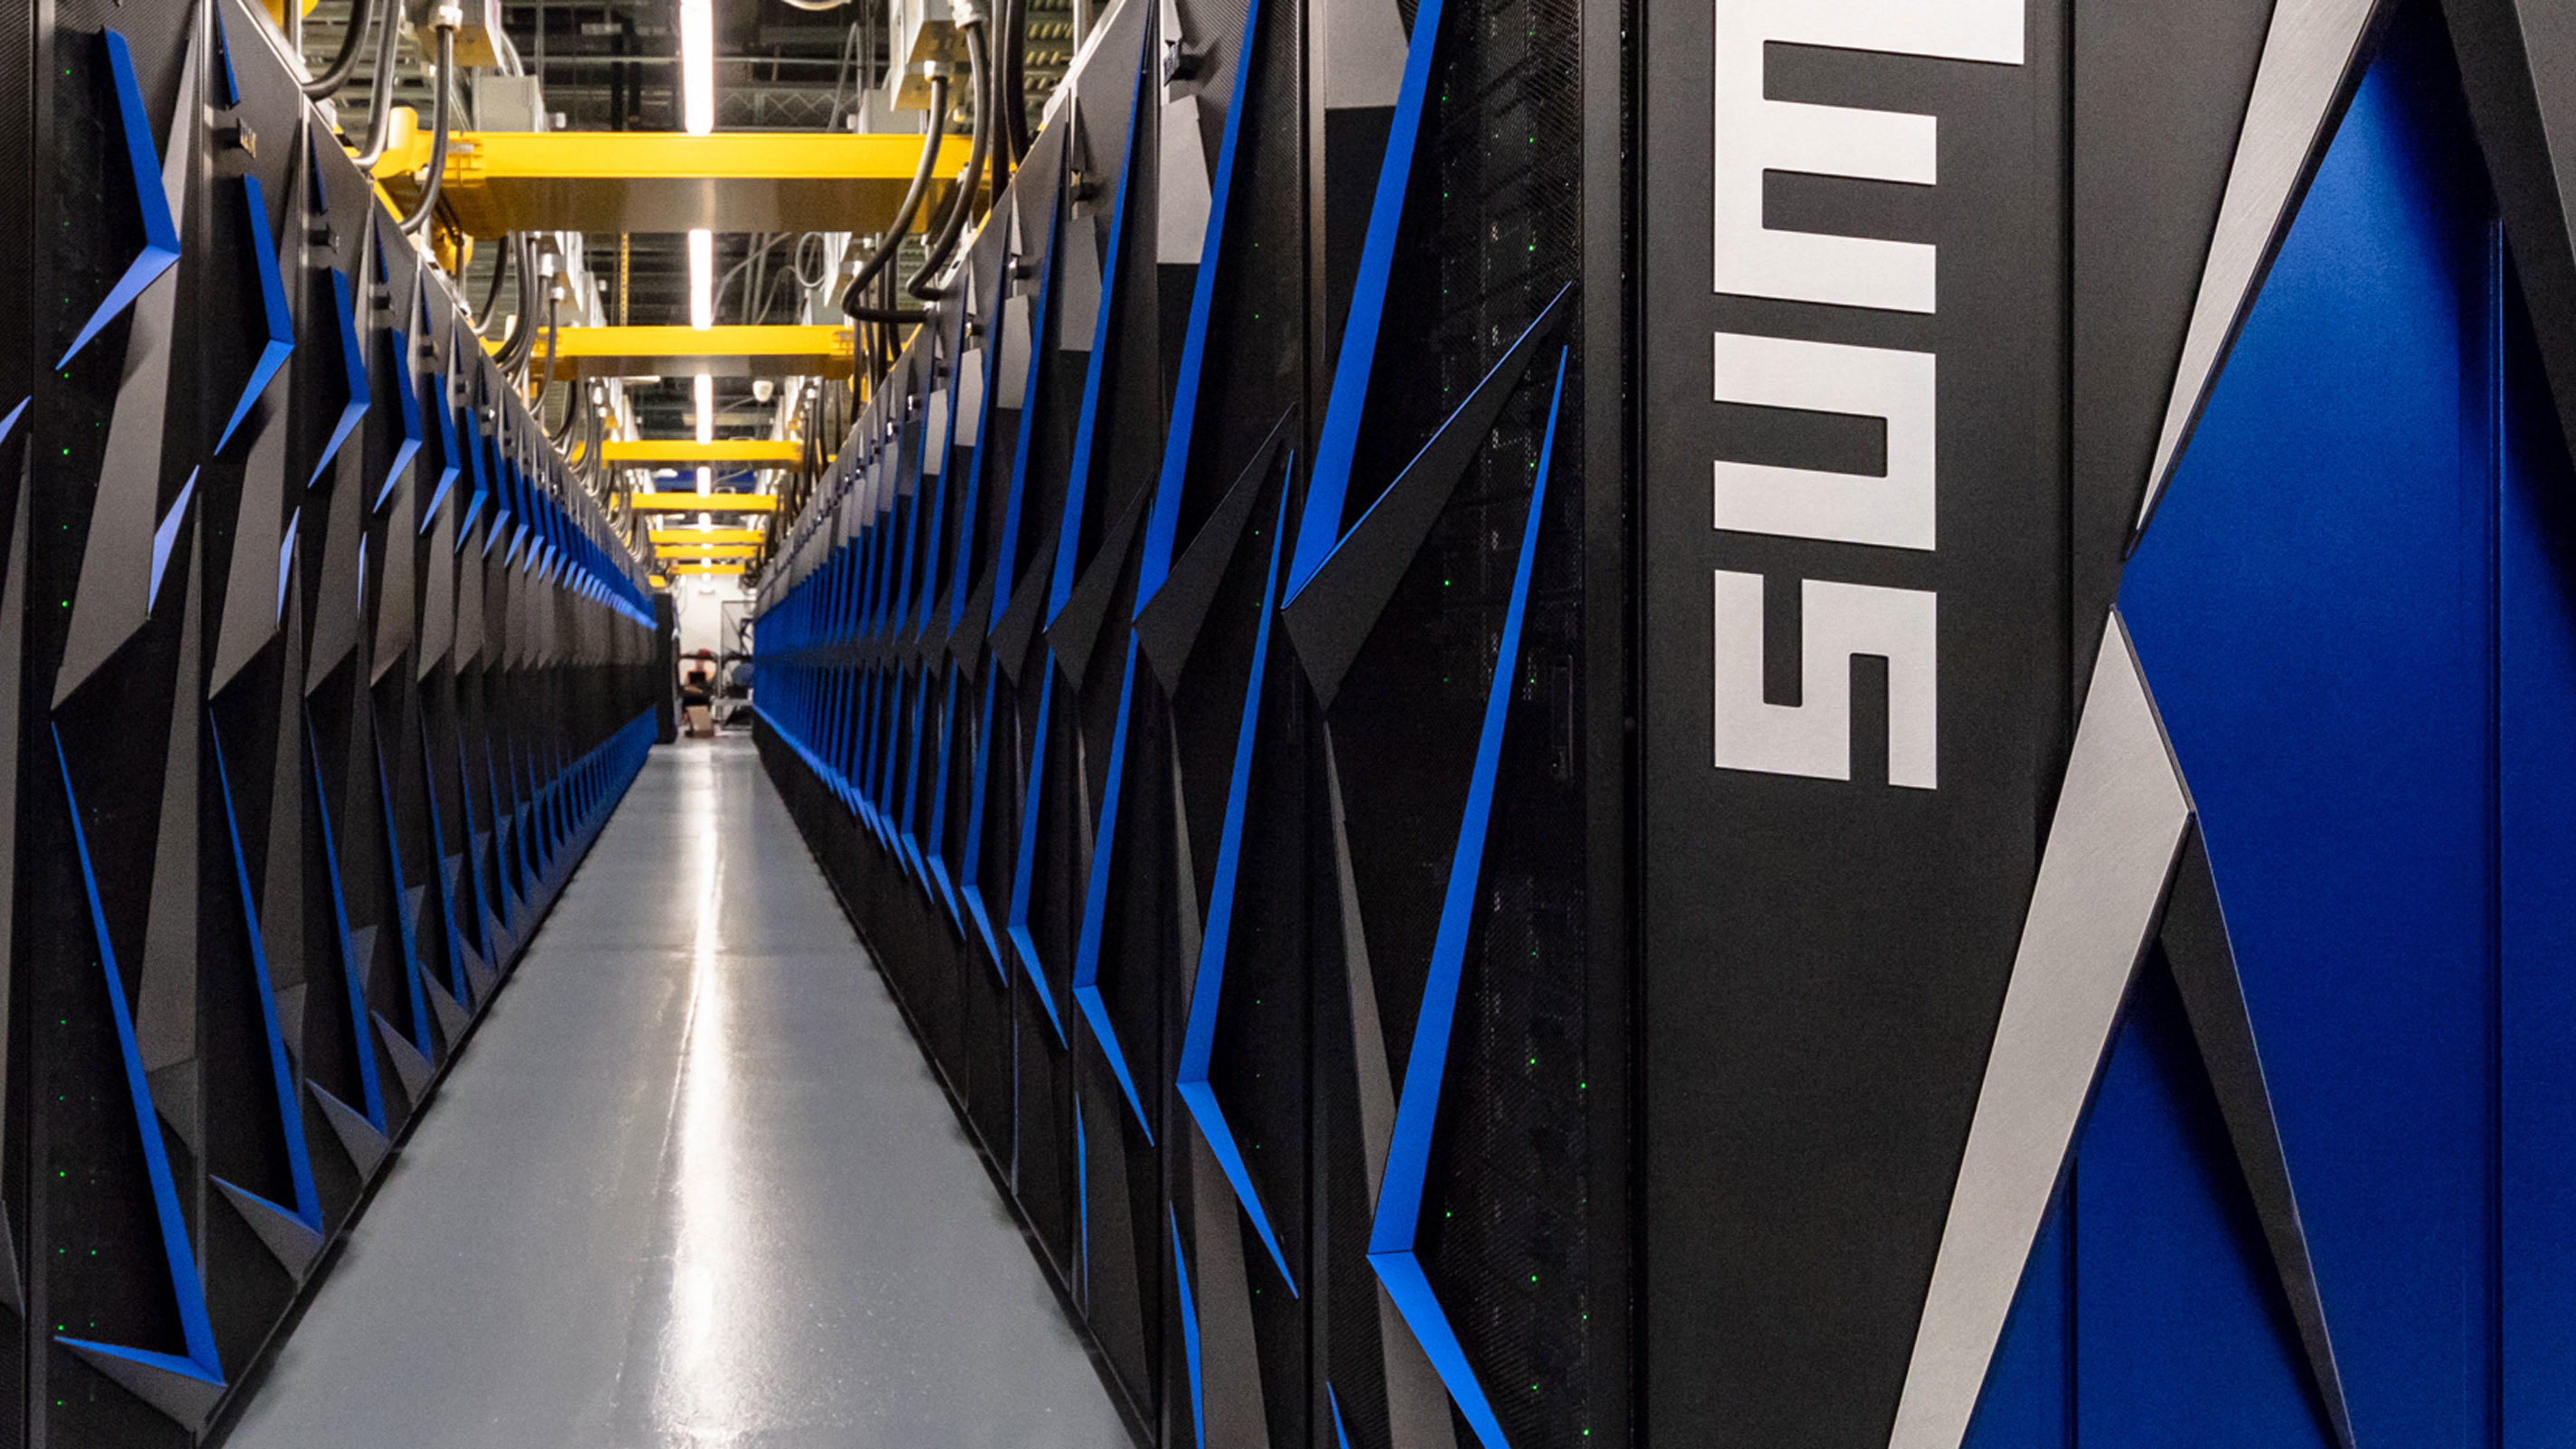 Rewriting the rules for supercomputers